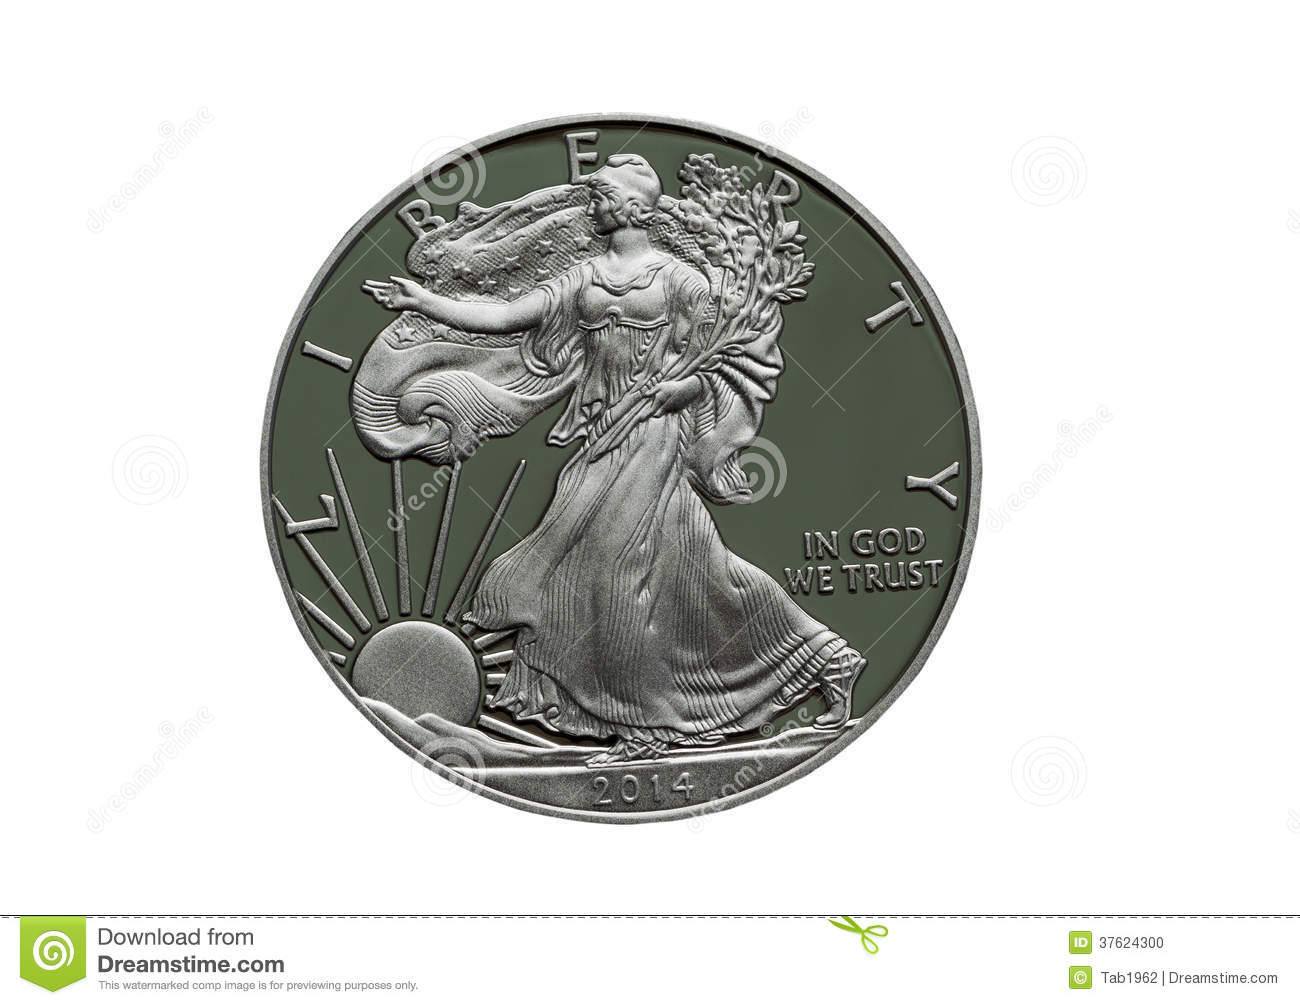 2014 Proof United States of America Silver Dollar